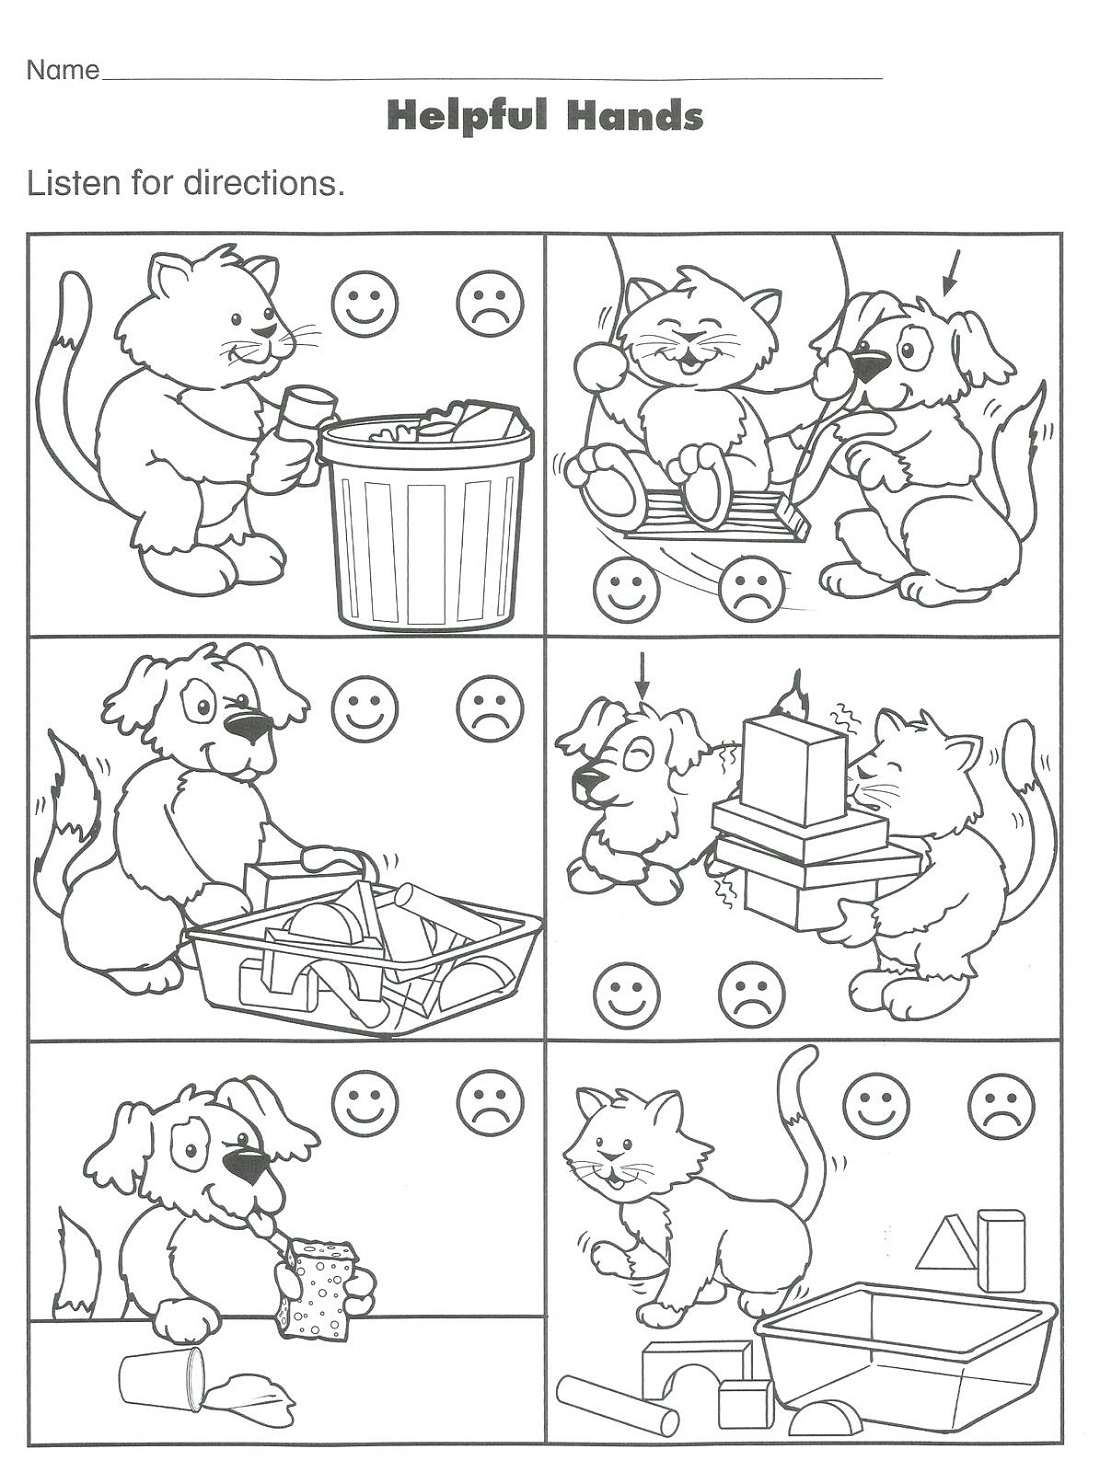 Activity Worksheets For Kids Good Manner